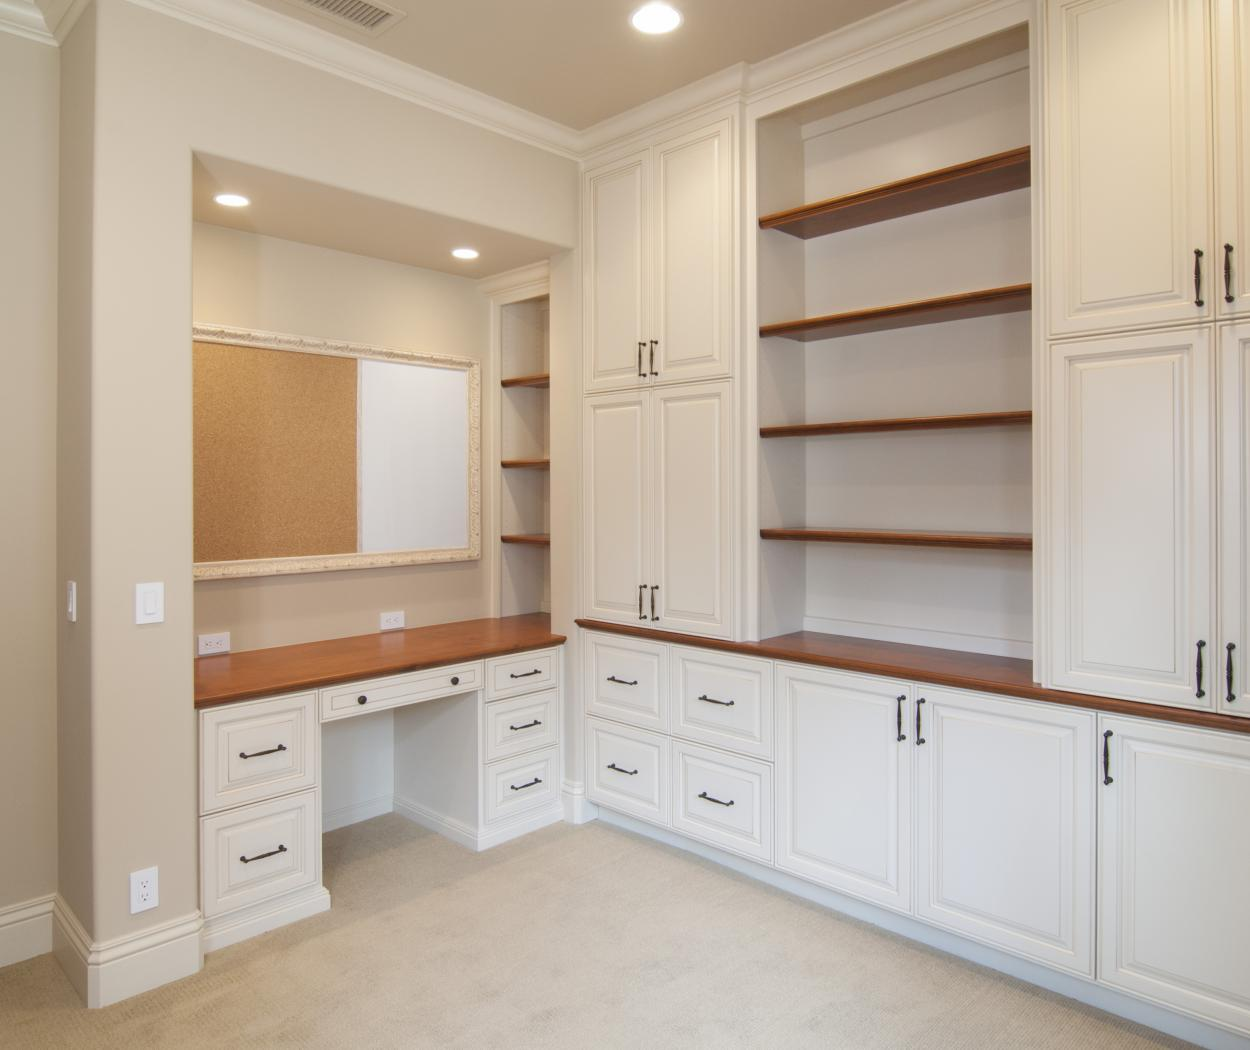 Beautiful Off White Office Built-Ins with Stained Open Shelves and Oil Rubbed Bronze Hardware